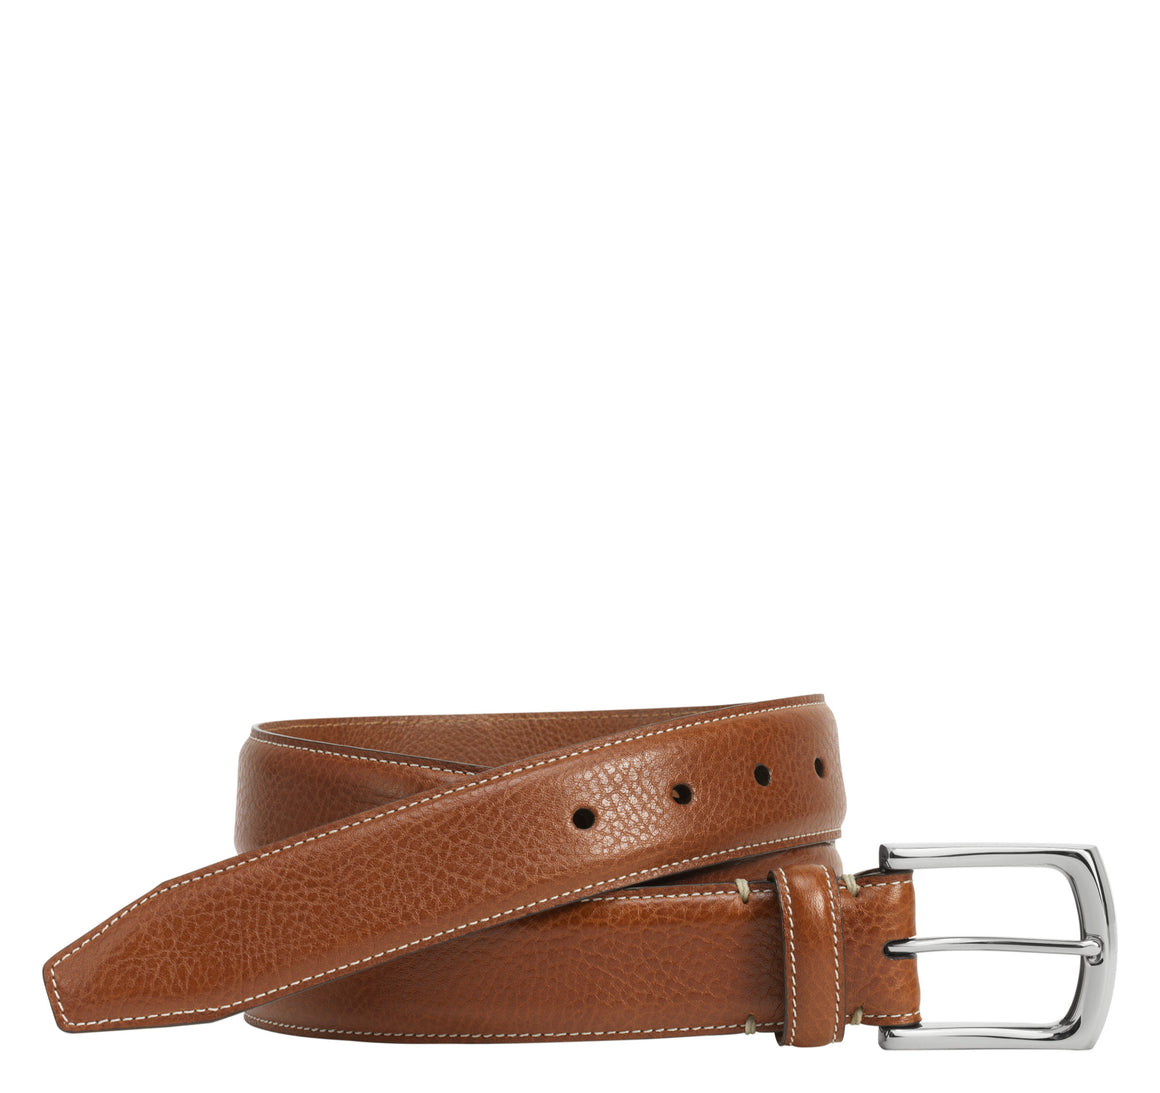 Johnston & Murphy Topstitched Leather Belt